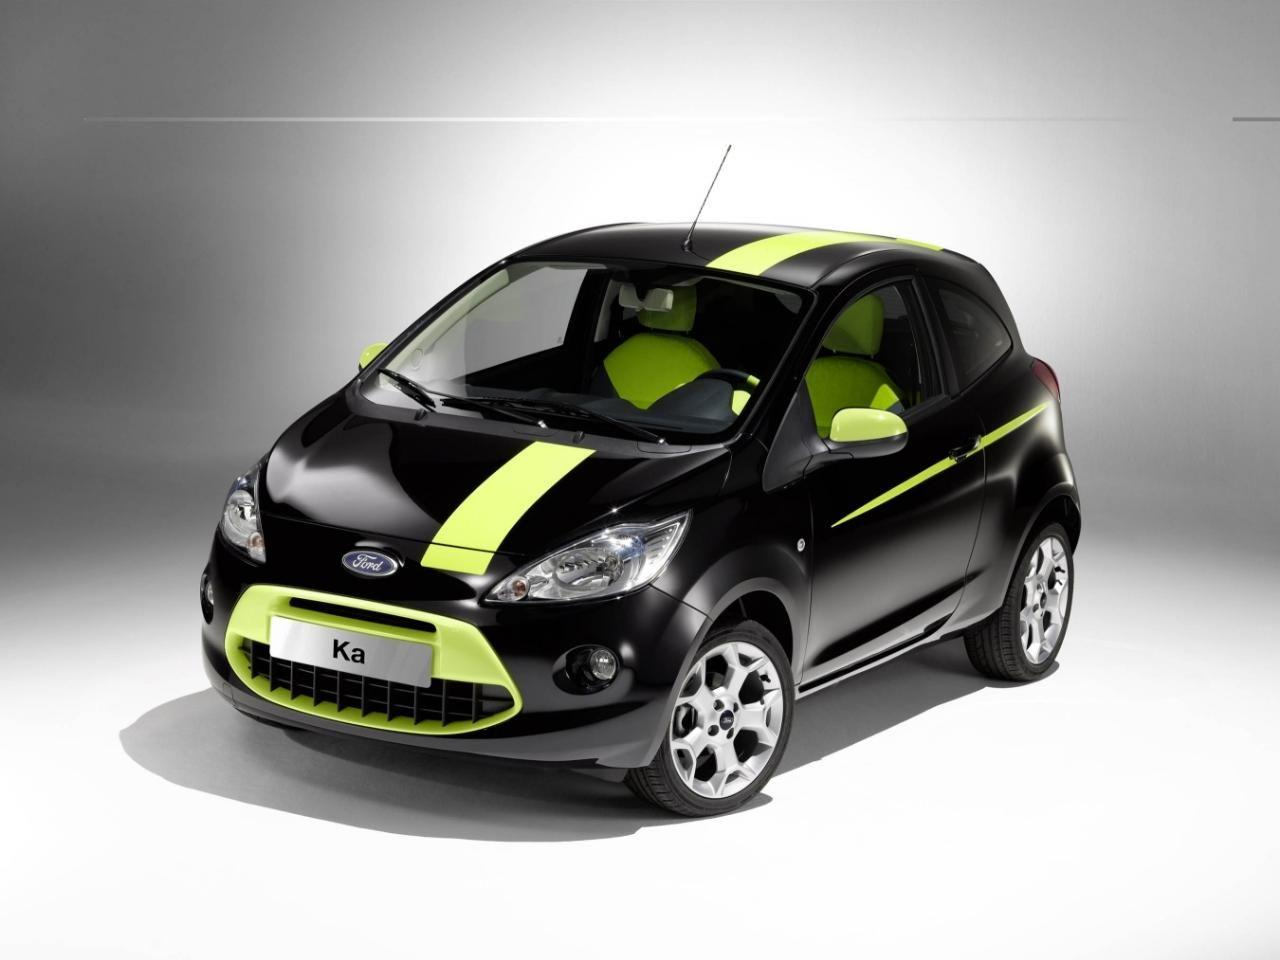 Ford Ka Special Editions 2009 photo 40428 pictures at high resolution